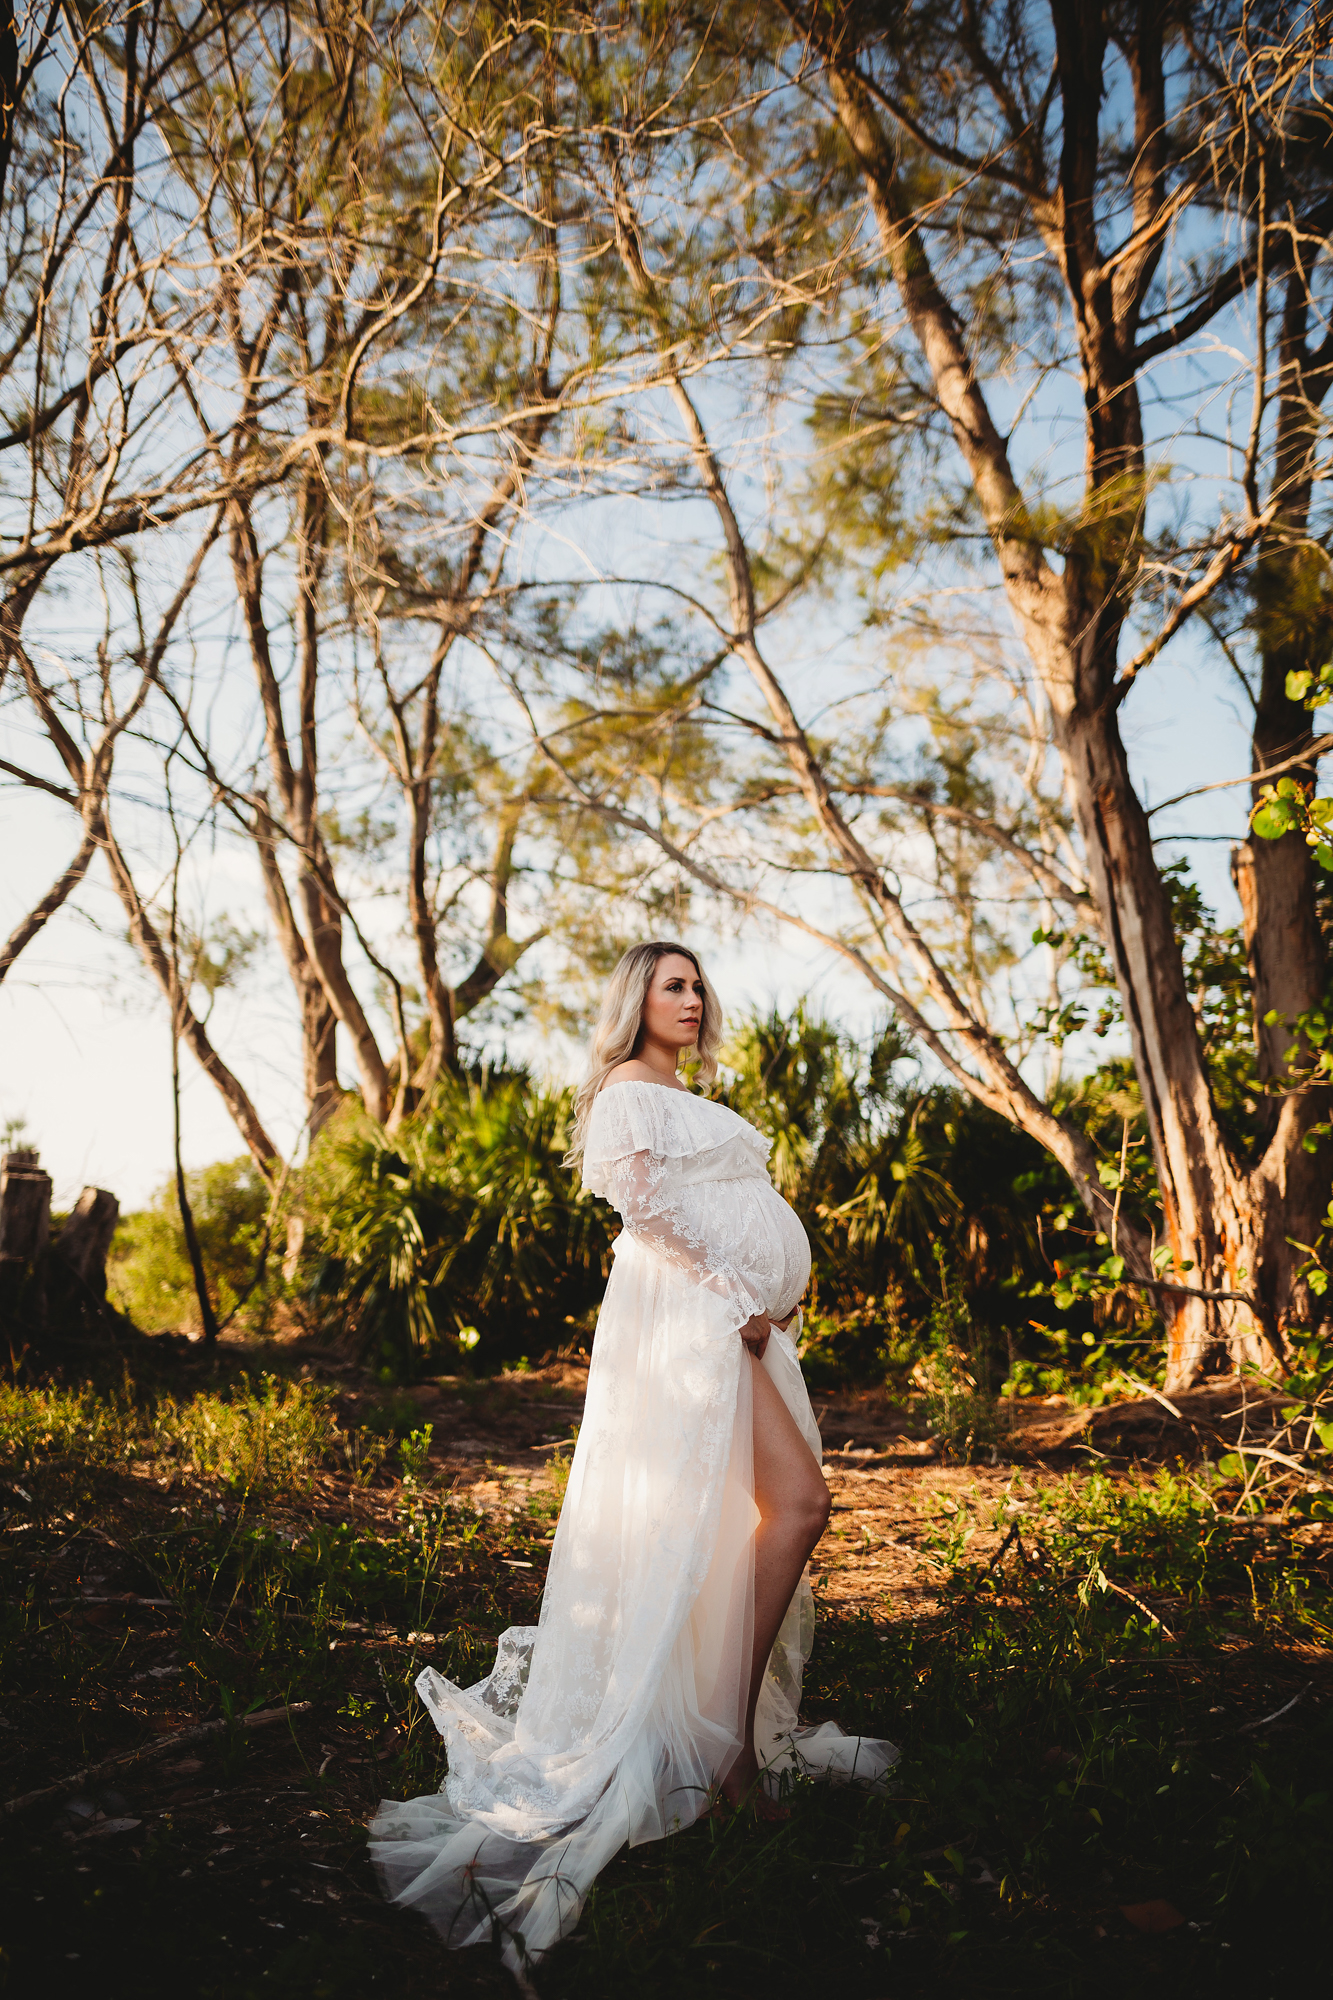 high end maternity photographer, saint petersburg fl baby bump photography